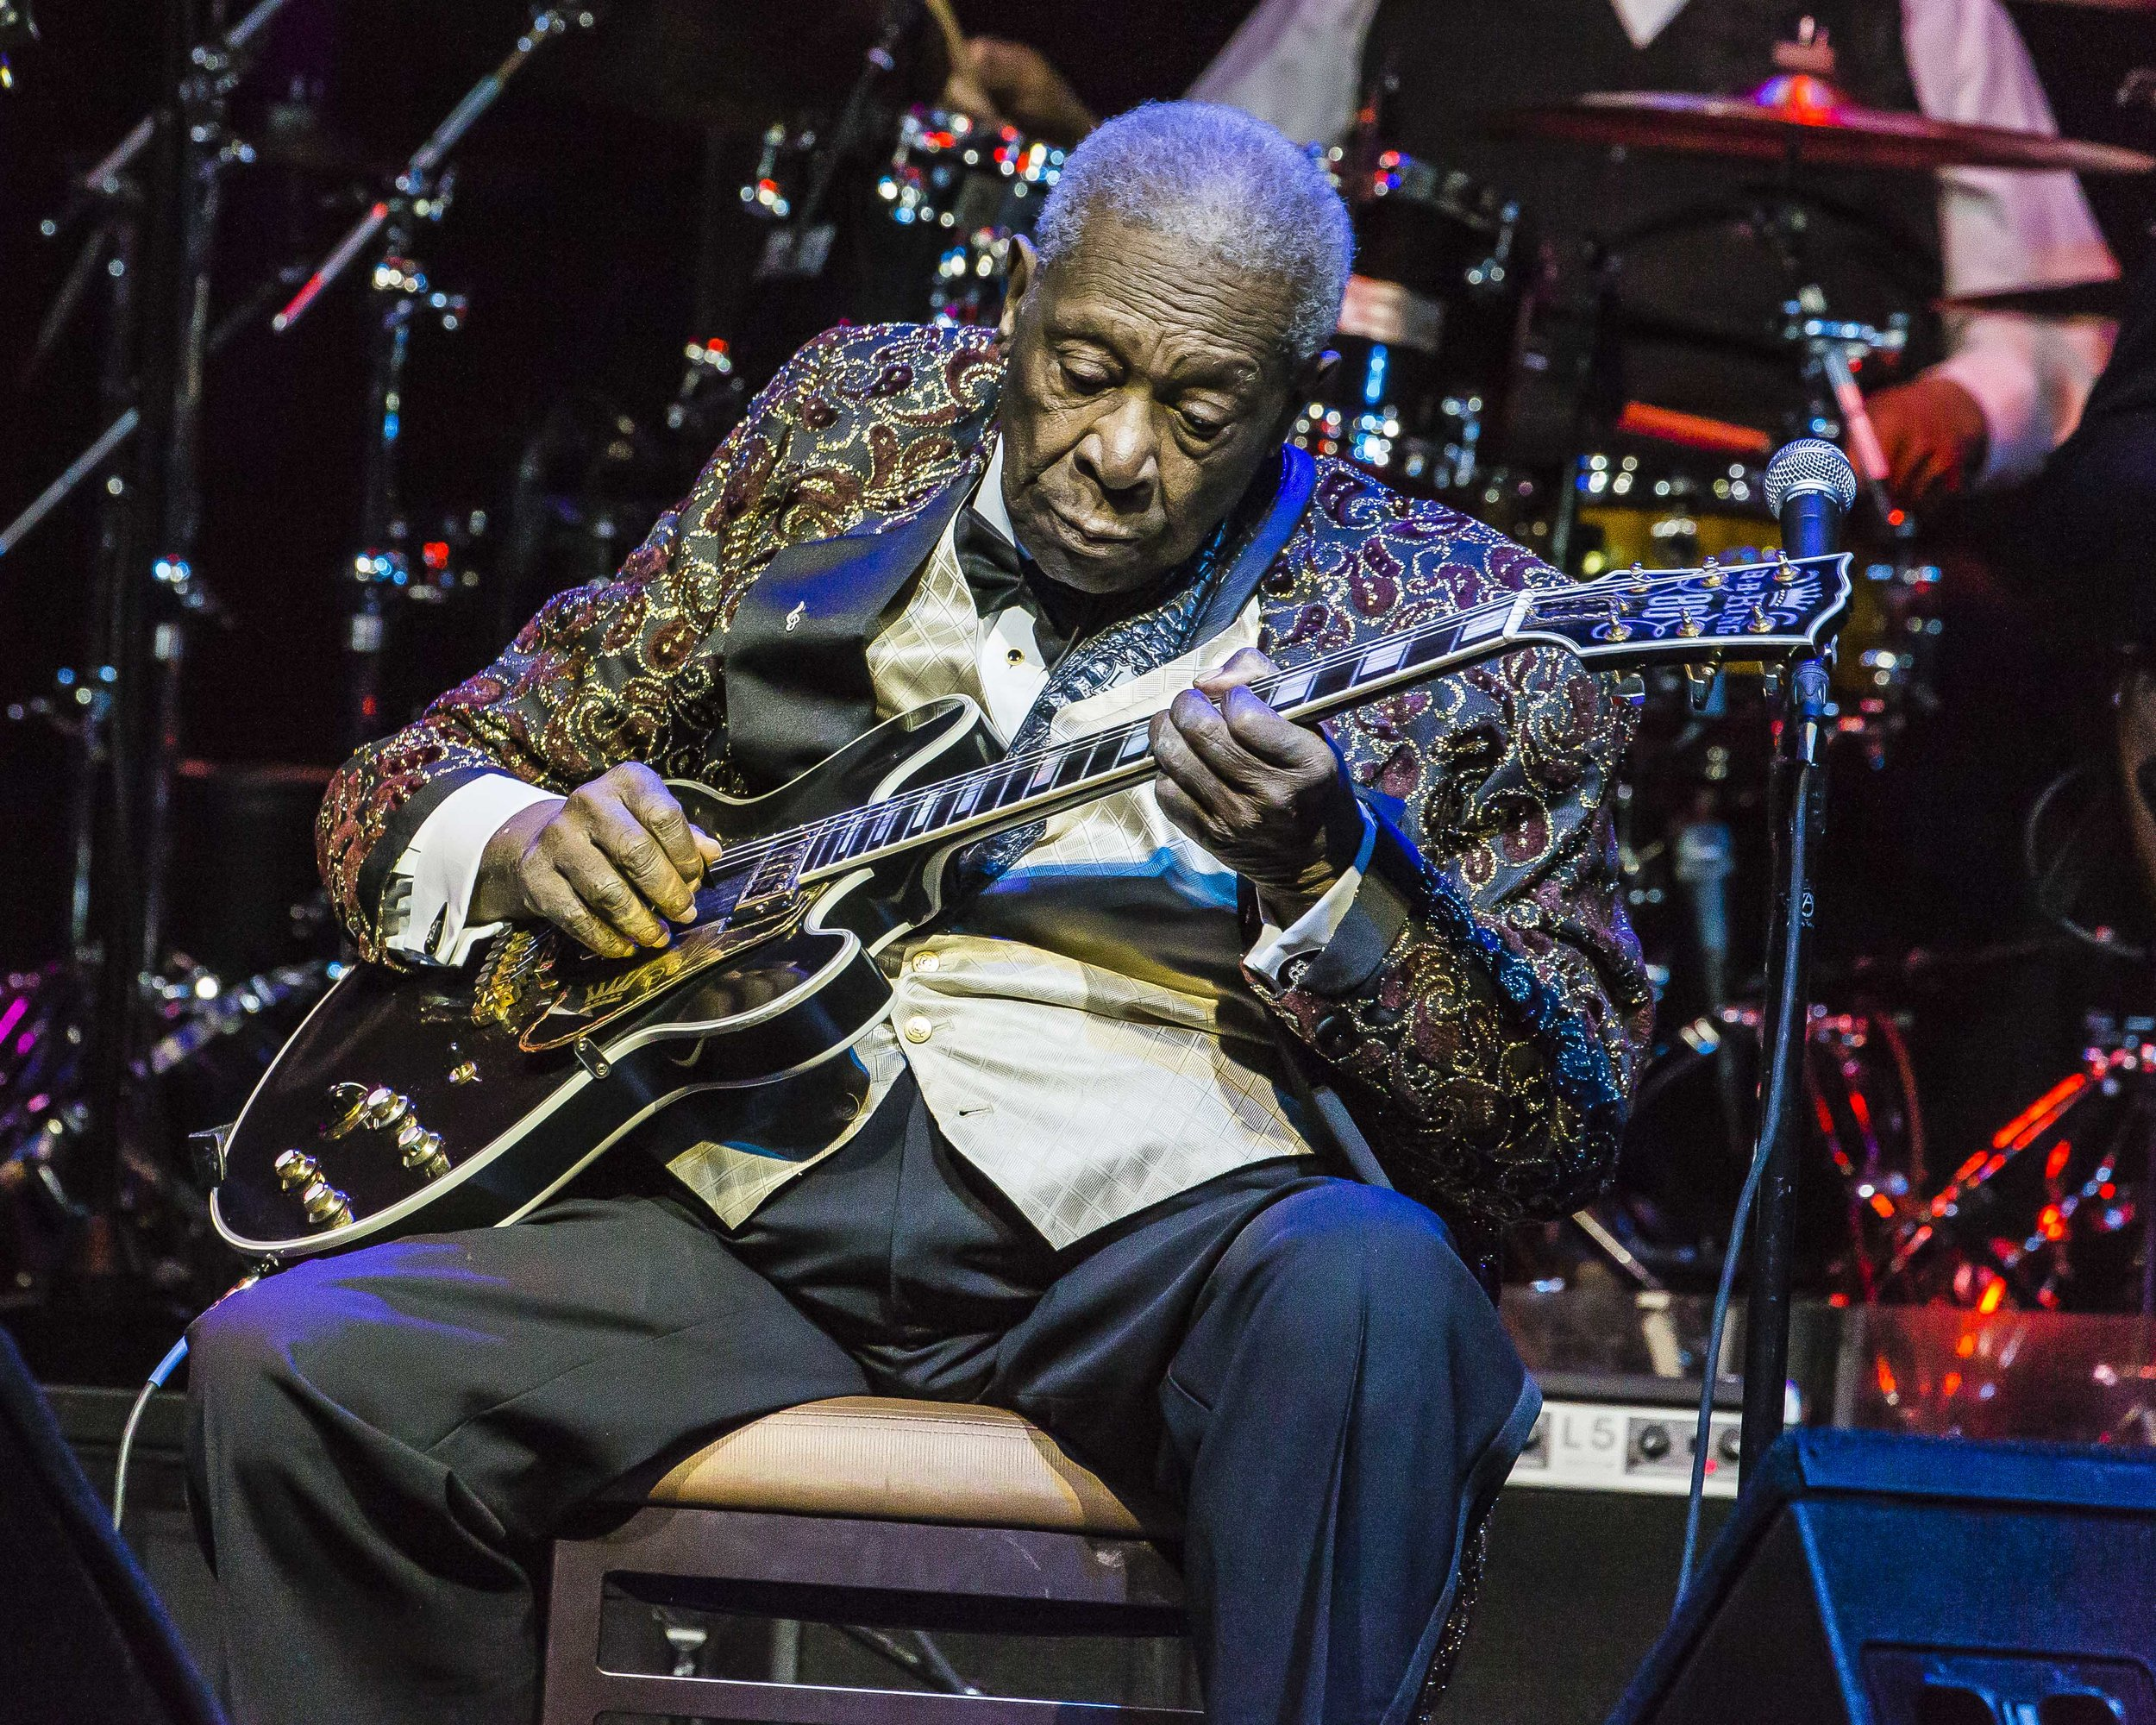 Photography BB King for the East Valley Tribune in 2013 was one of my career highlights; no cell phone could have mimicked this. (C) Miachelle DePiano